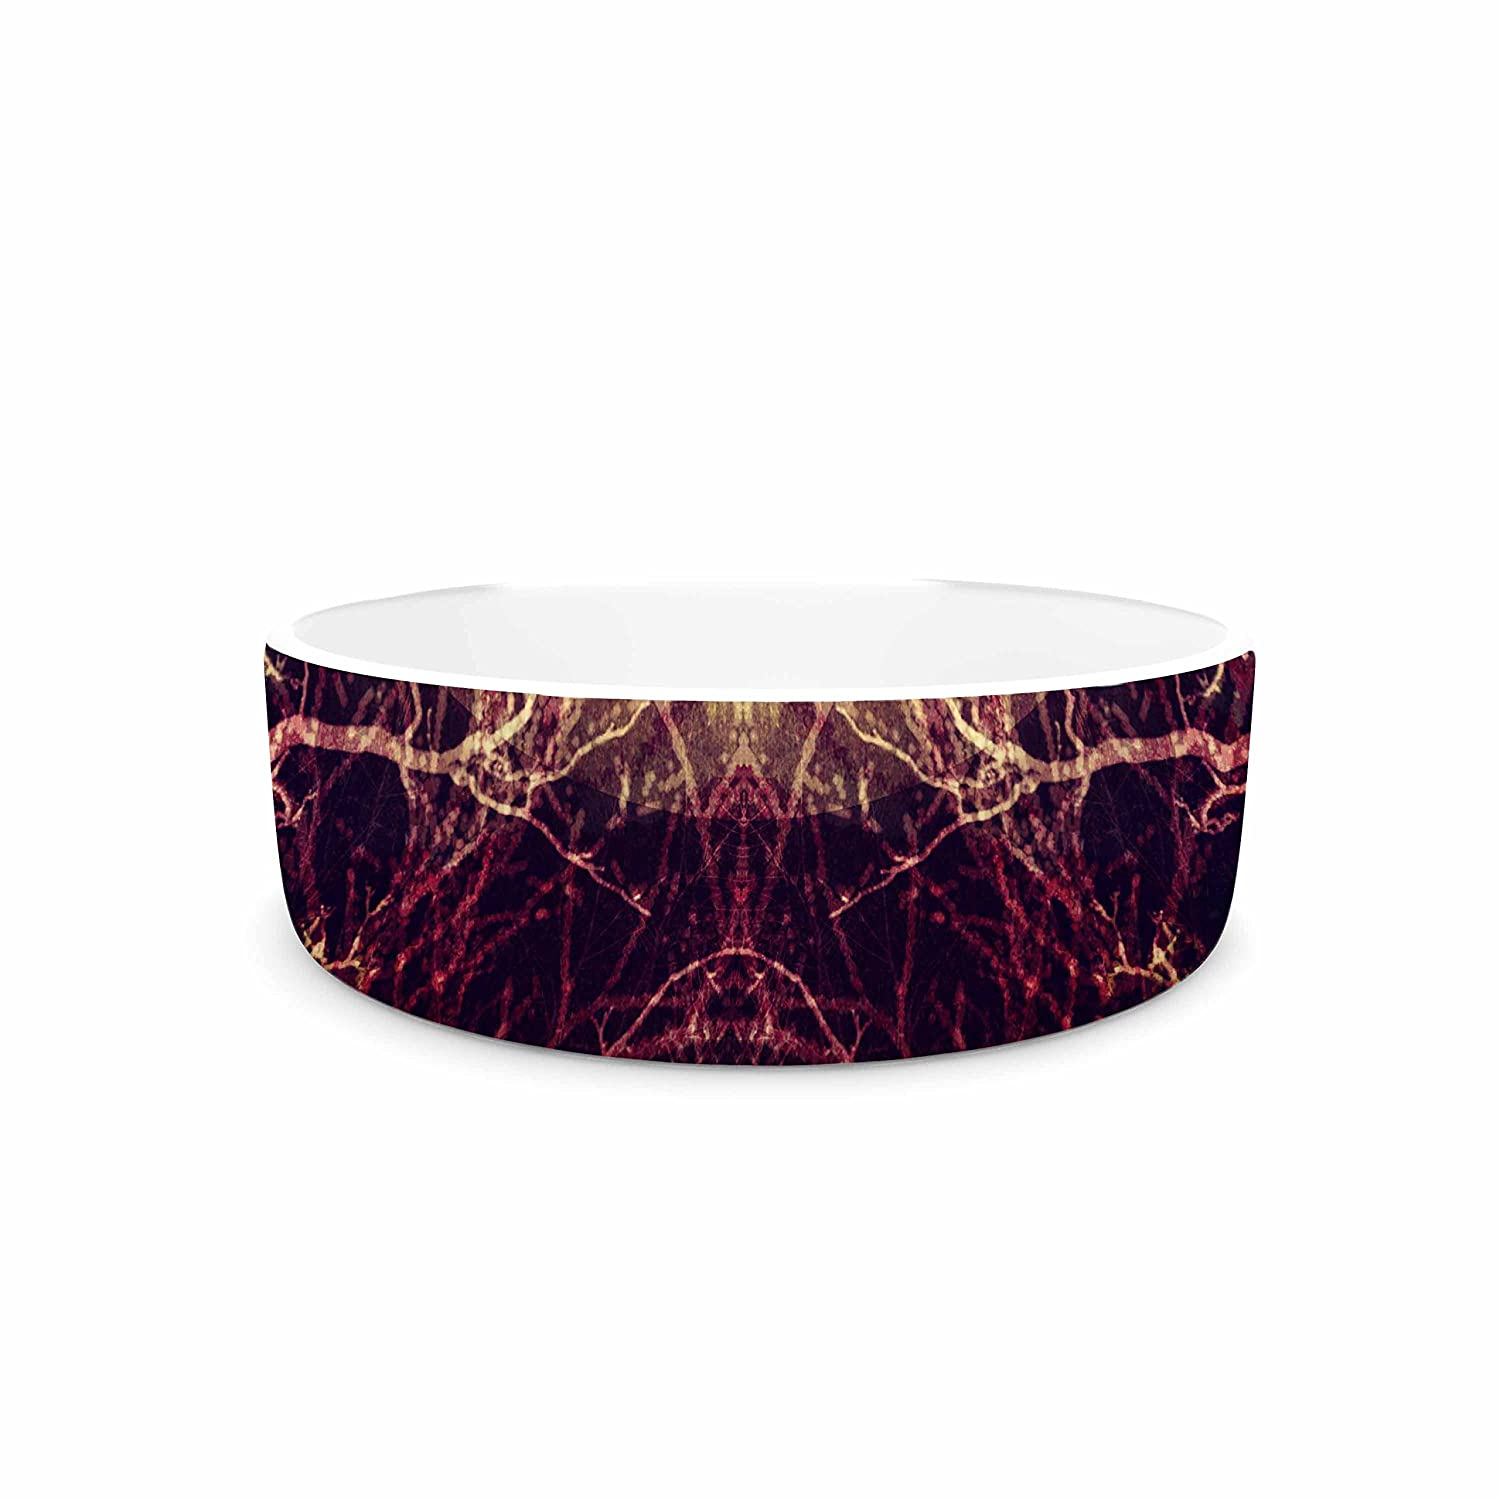 KESS InHouse Pia Schneider Burning Roots IV  Maroon Celestial Pet Bowl, 7